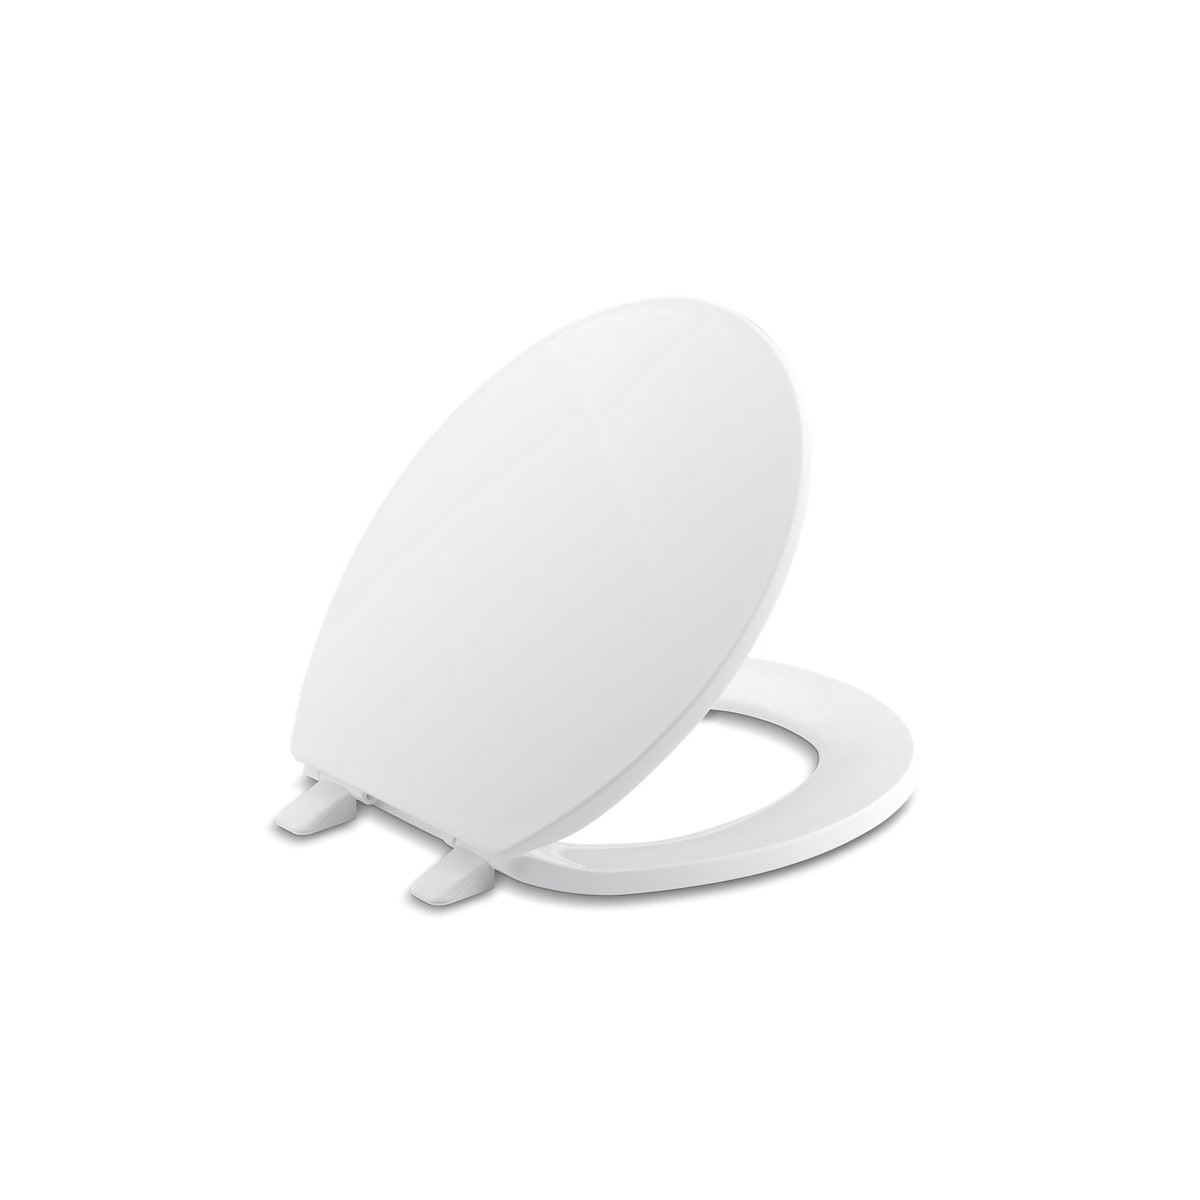 Fabulous Kohler Brevia Plastic Round Toilet Seat K 4775 47 Almond Caraccident5 Cool Chair Designs And Ideas Caraccident5Info